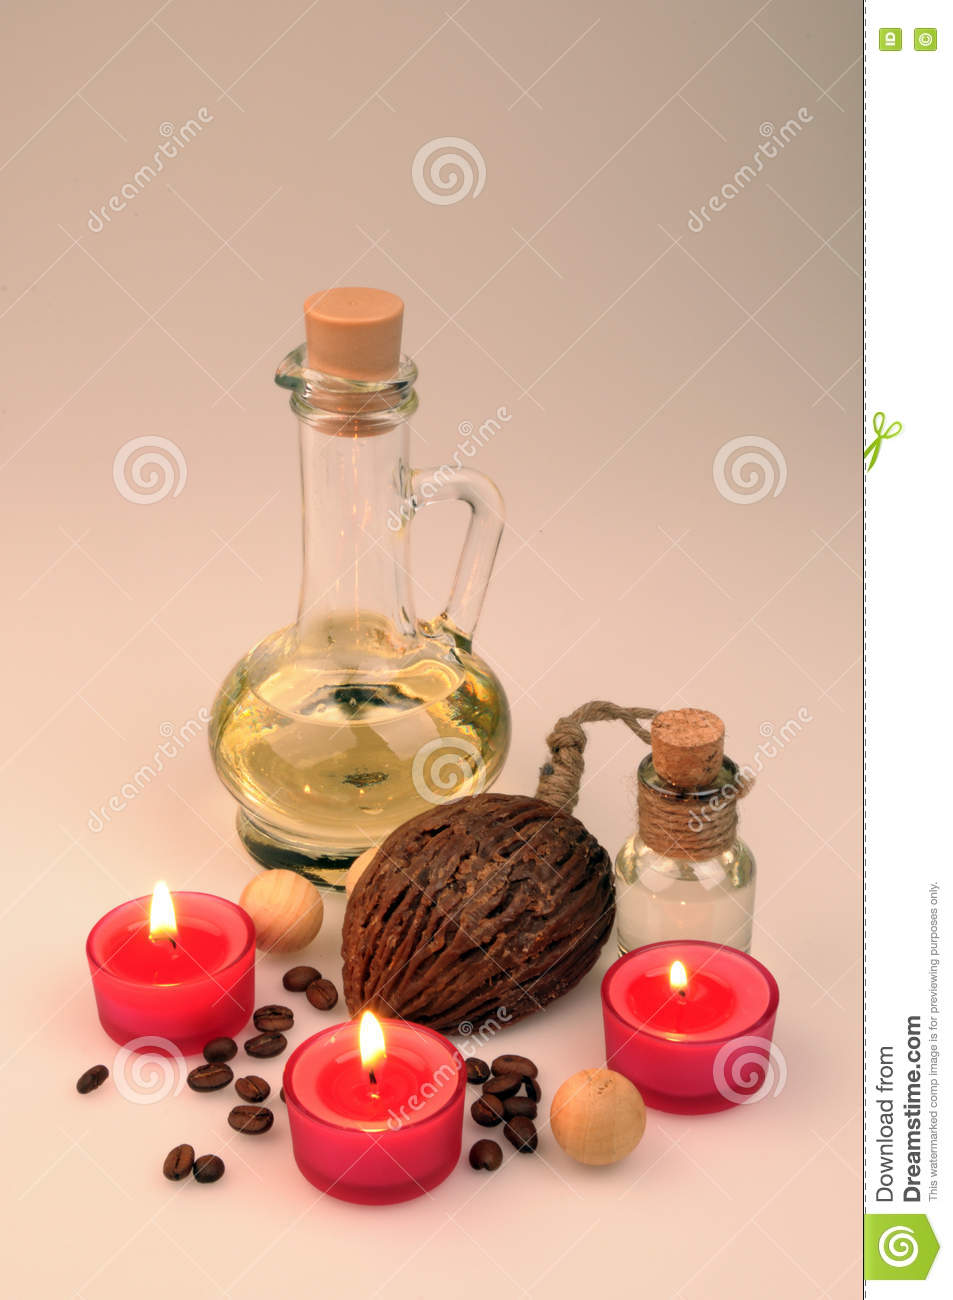 Spa Composition Scented Candles Coffee Beans Aromatic Wooden Balls Stock Photo Image Of Cream Massge 76037702